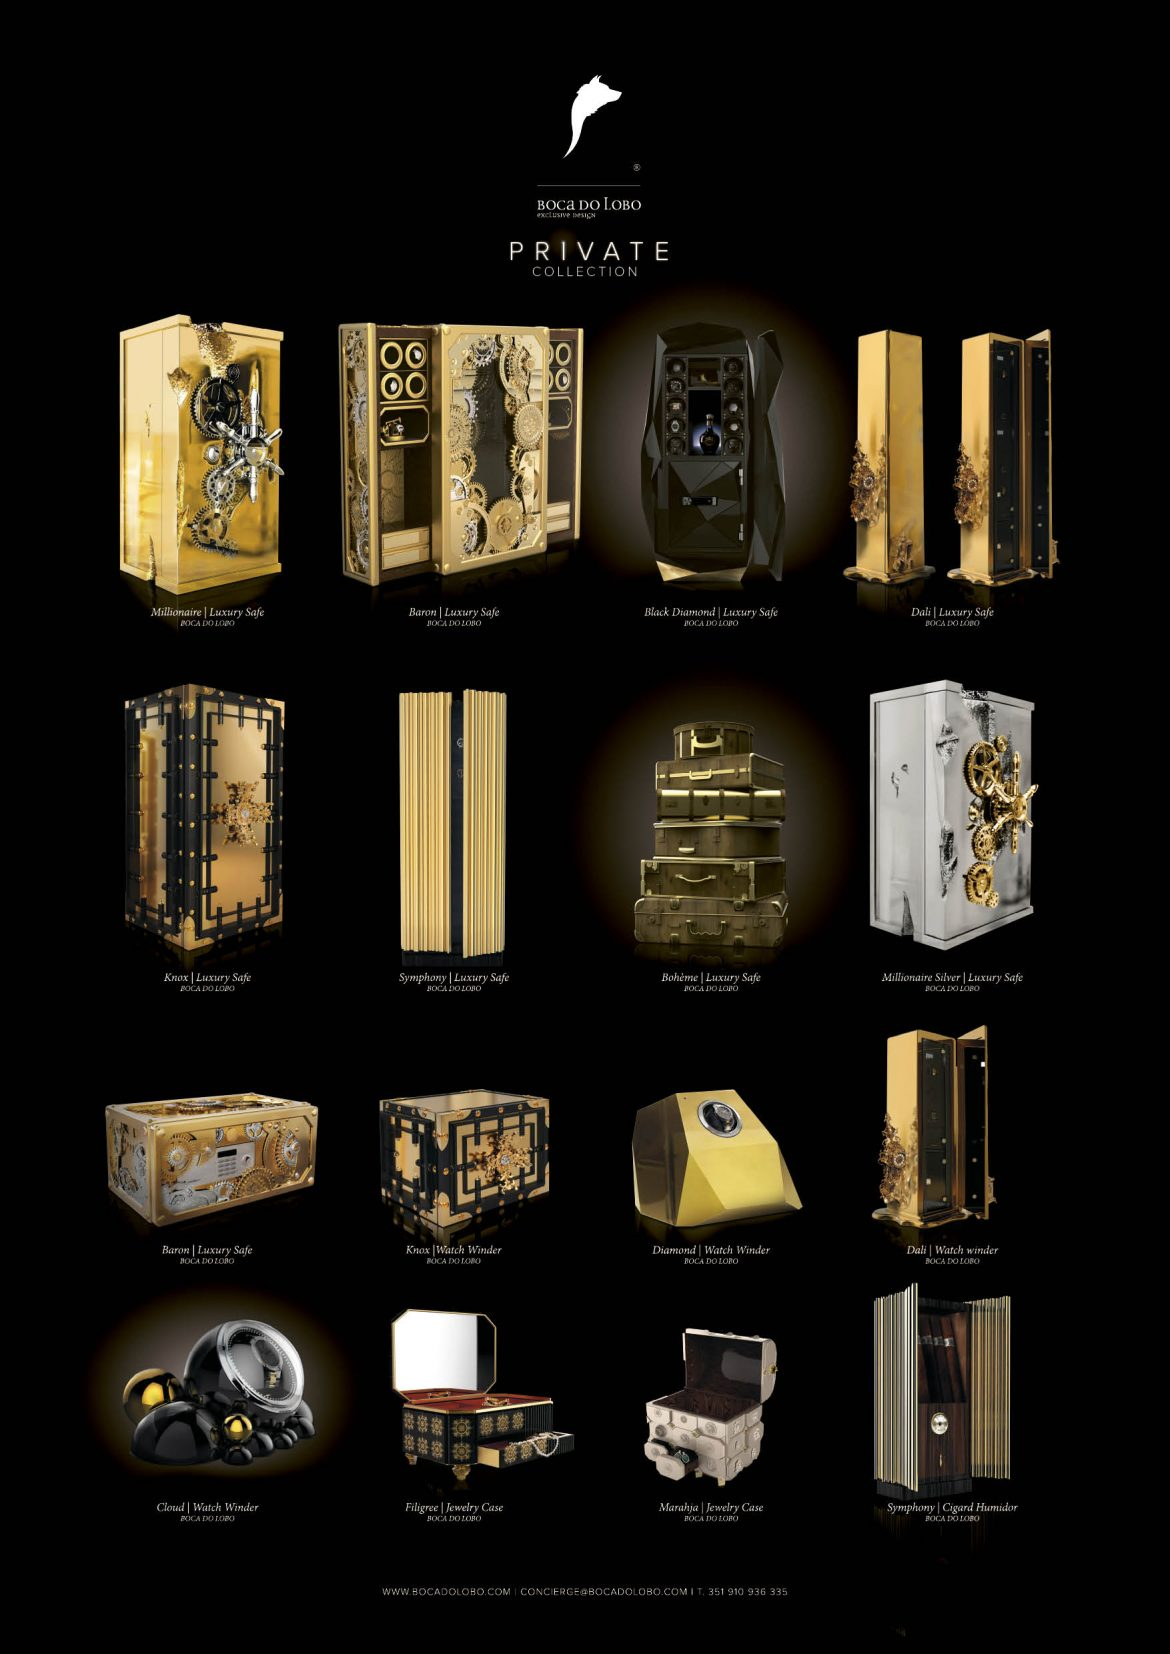 Luxury Safes by the Hand of Master Artisans - Boca do Lobo - Private Collection  Luxury Safes by the Hand of Master Artisans PRIVATE3